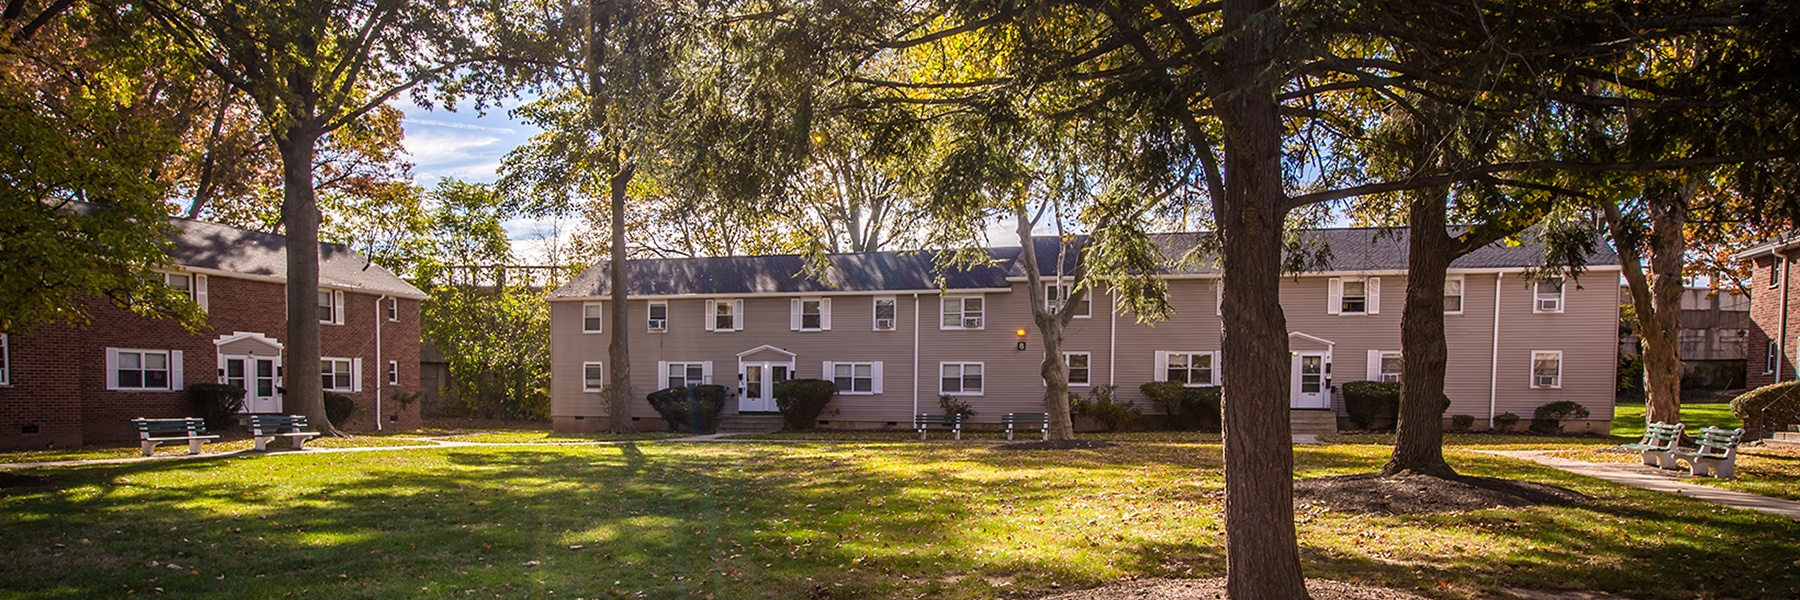 North Brunswick Gardens Apartments For Rent in North Brunswick, NJ Building View